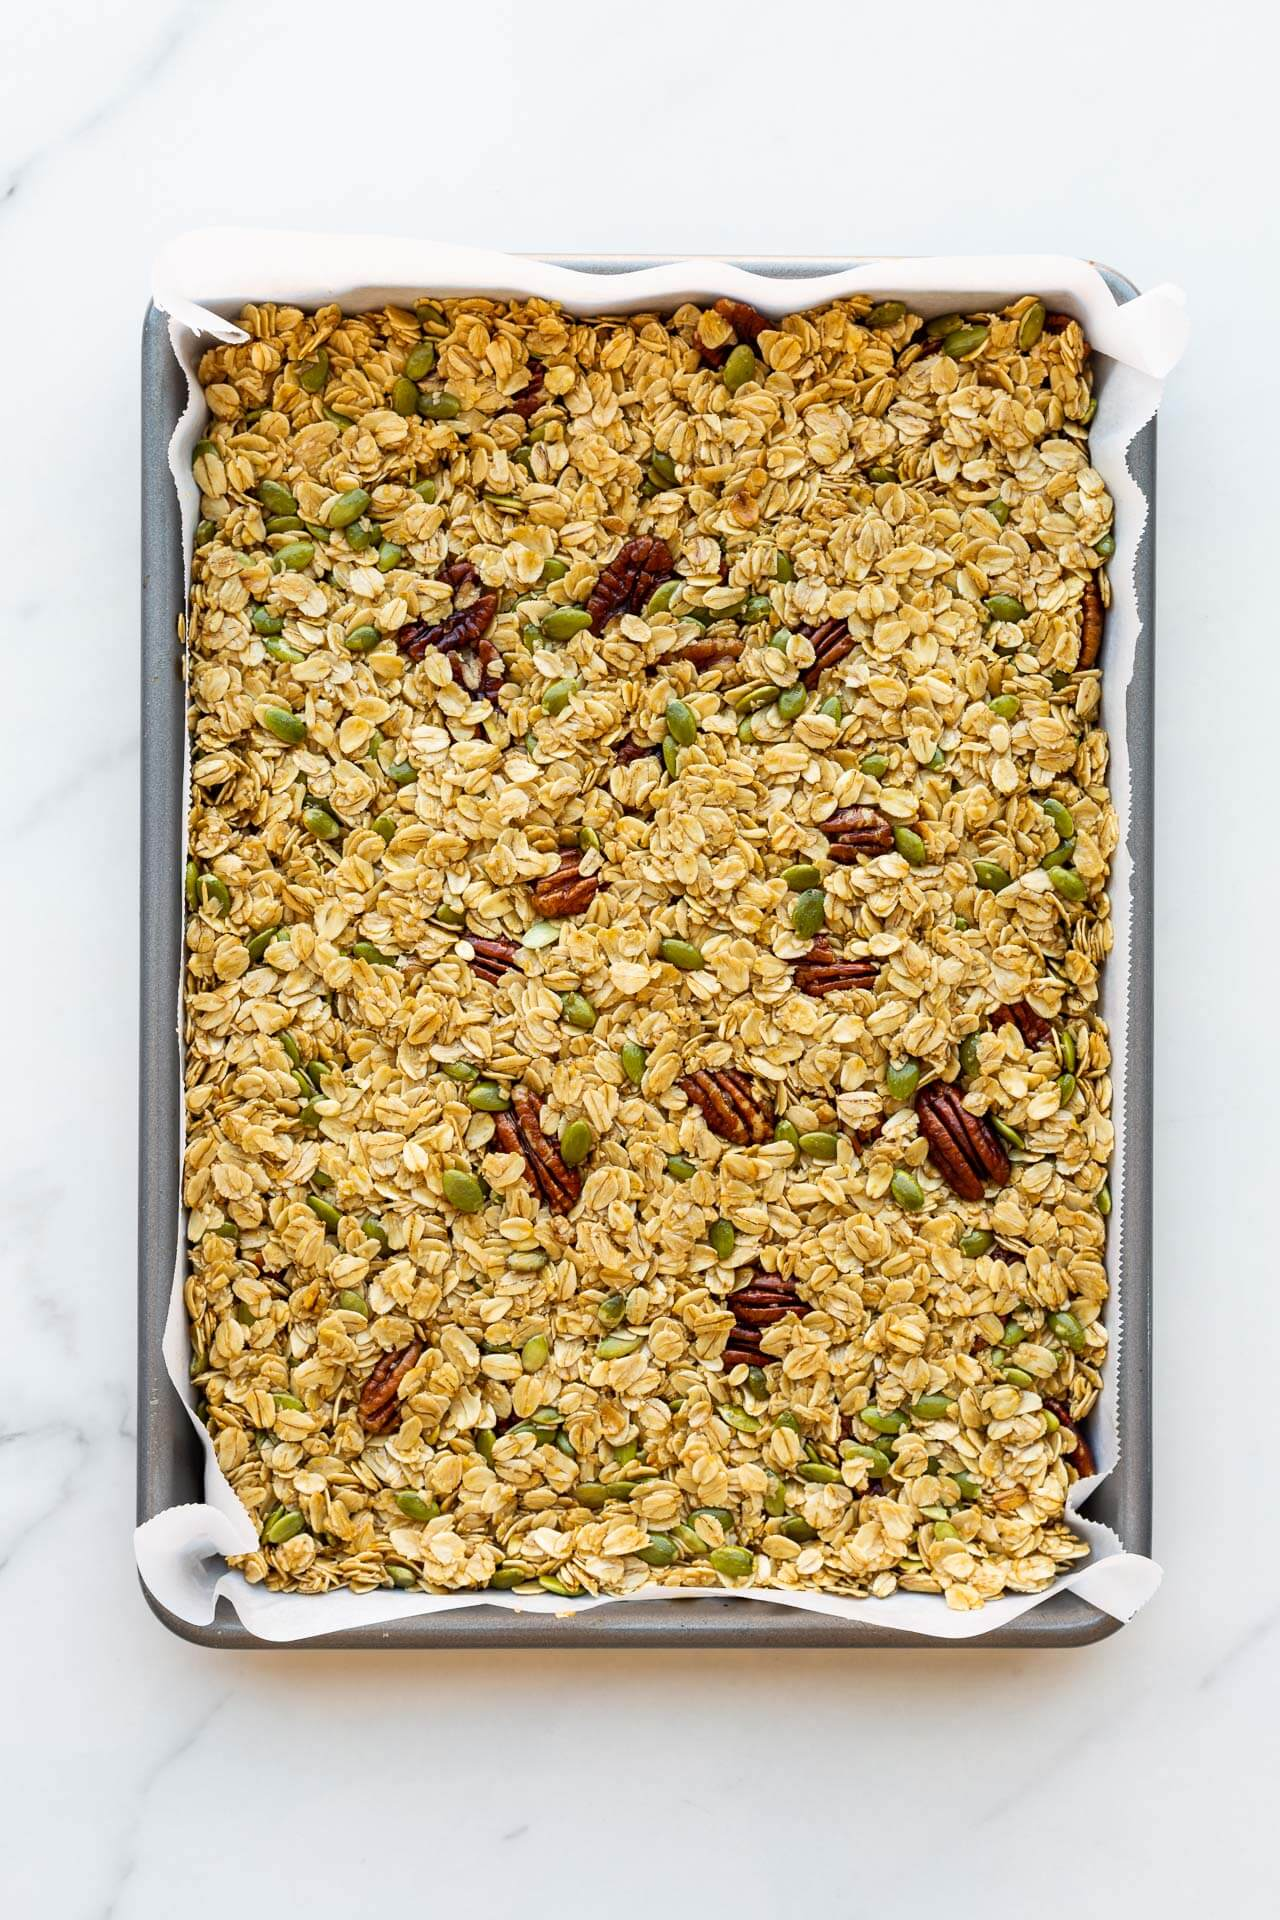 Granola mixture pressed in a sheet pan